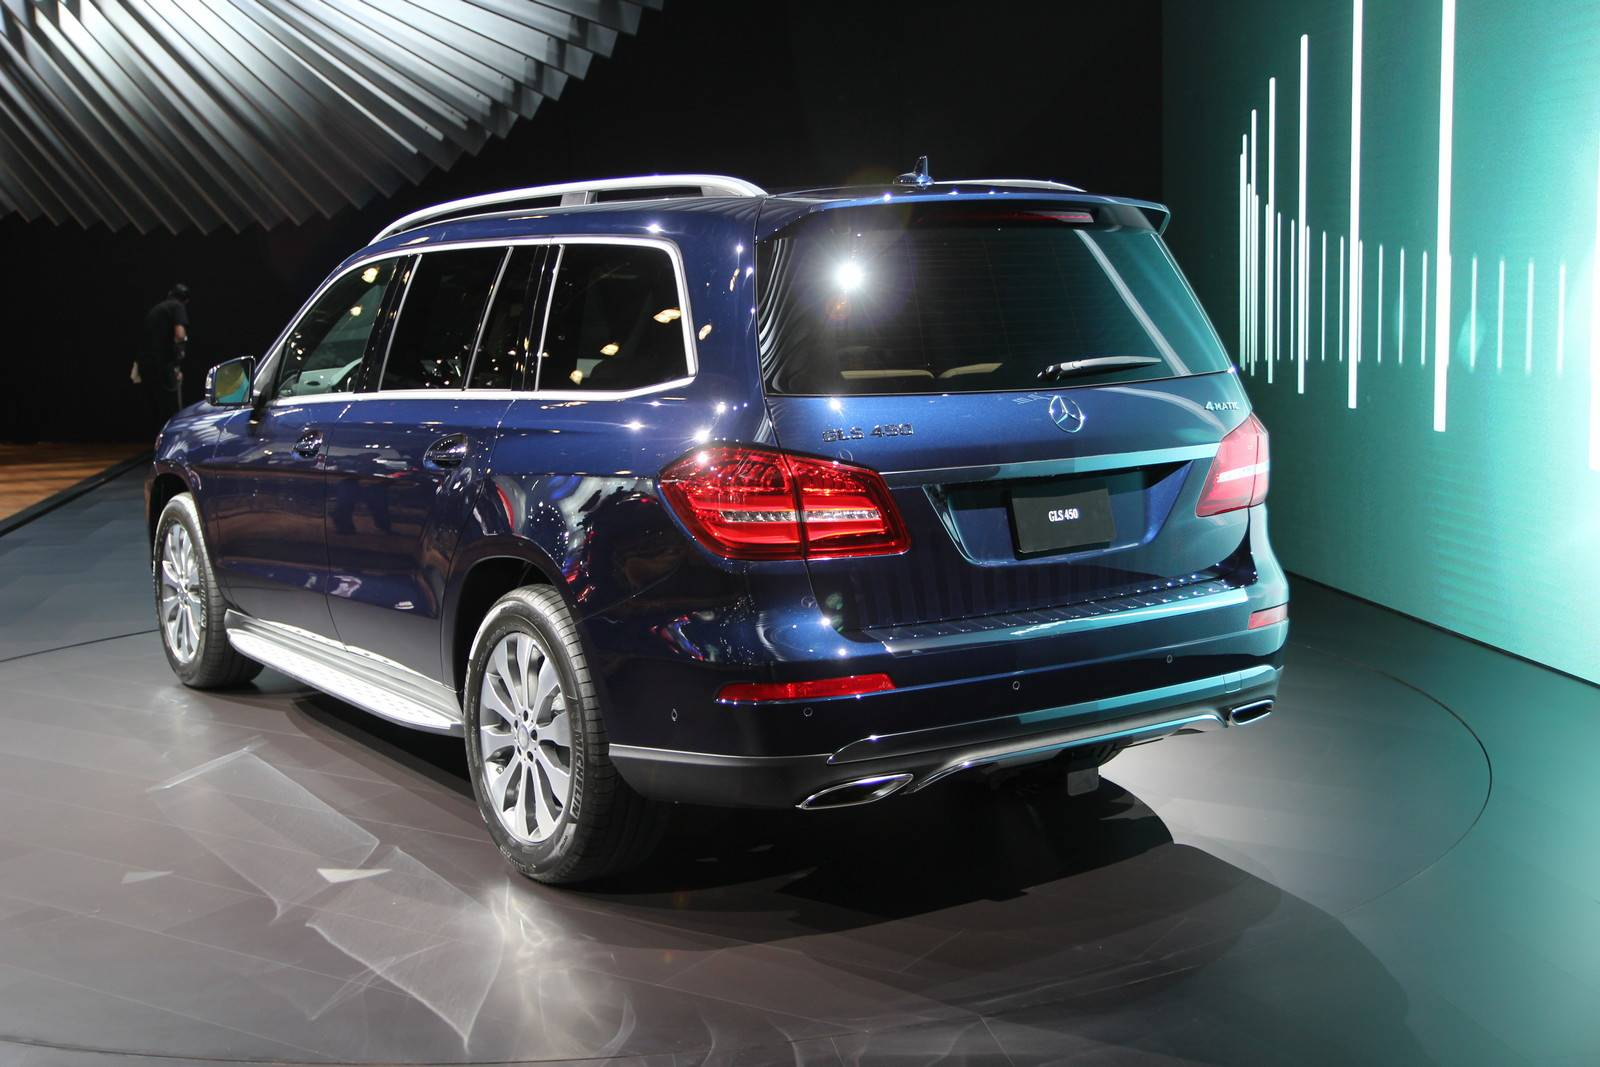 Los angeles 2015 mercedes benz gls gtspirit for 2017 mercedes benz gls350d 4matic